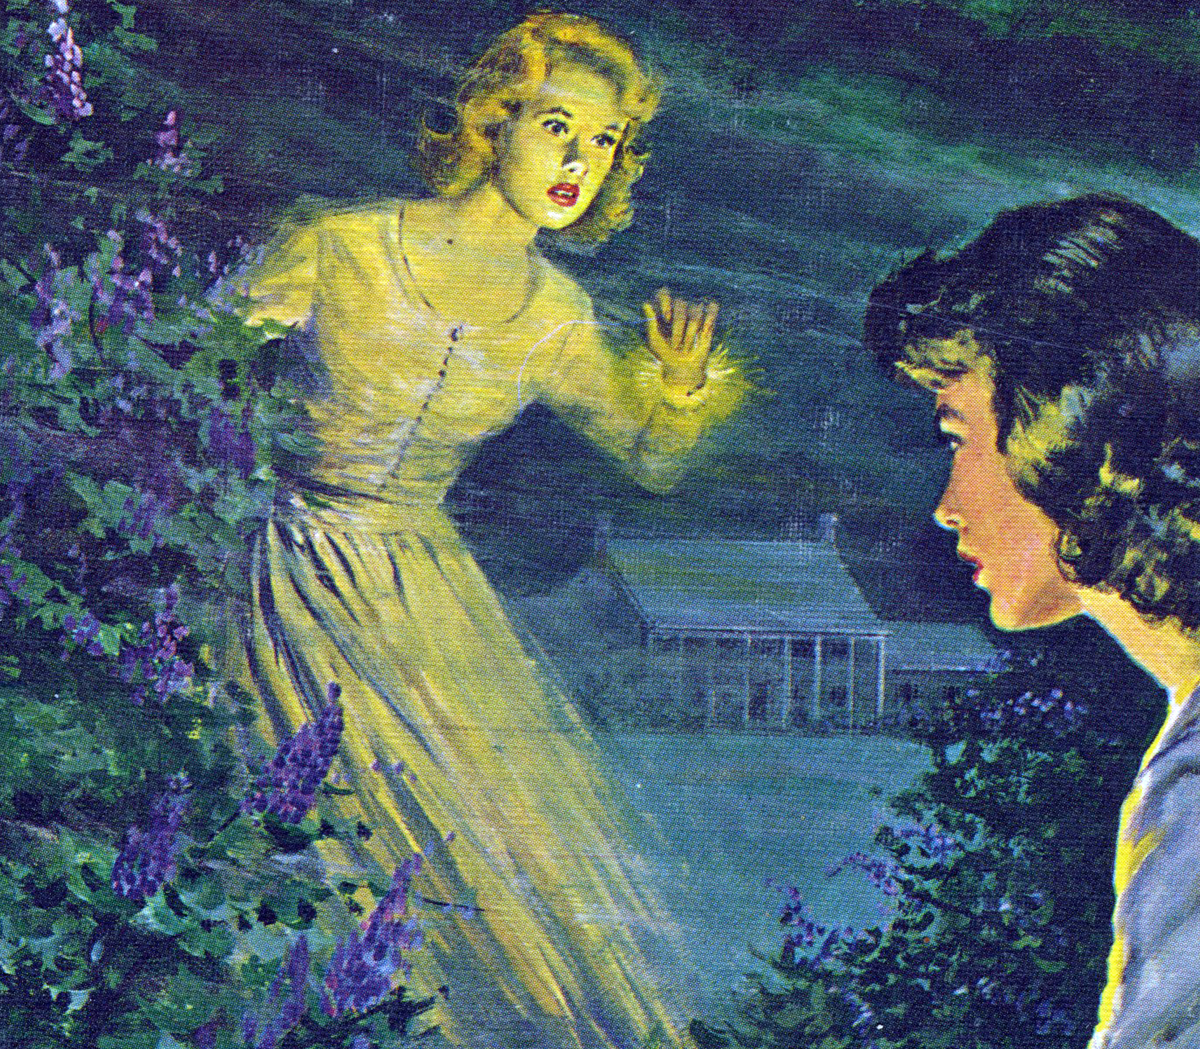 The Mystery at Lilac Inn, courtesy of the Nancy Drew Research Institute